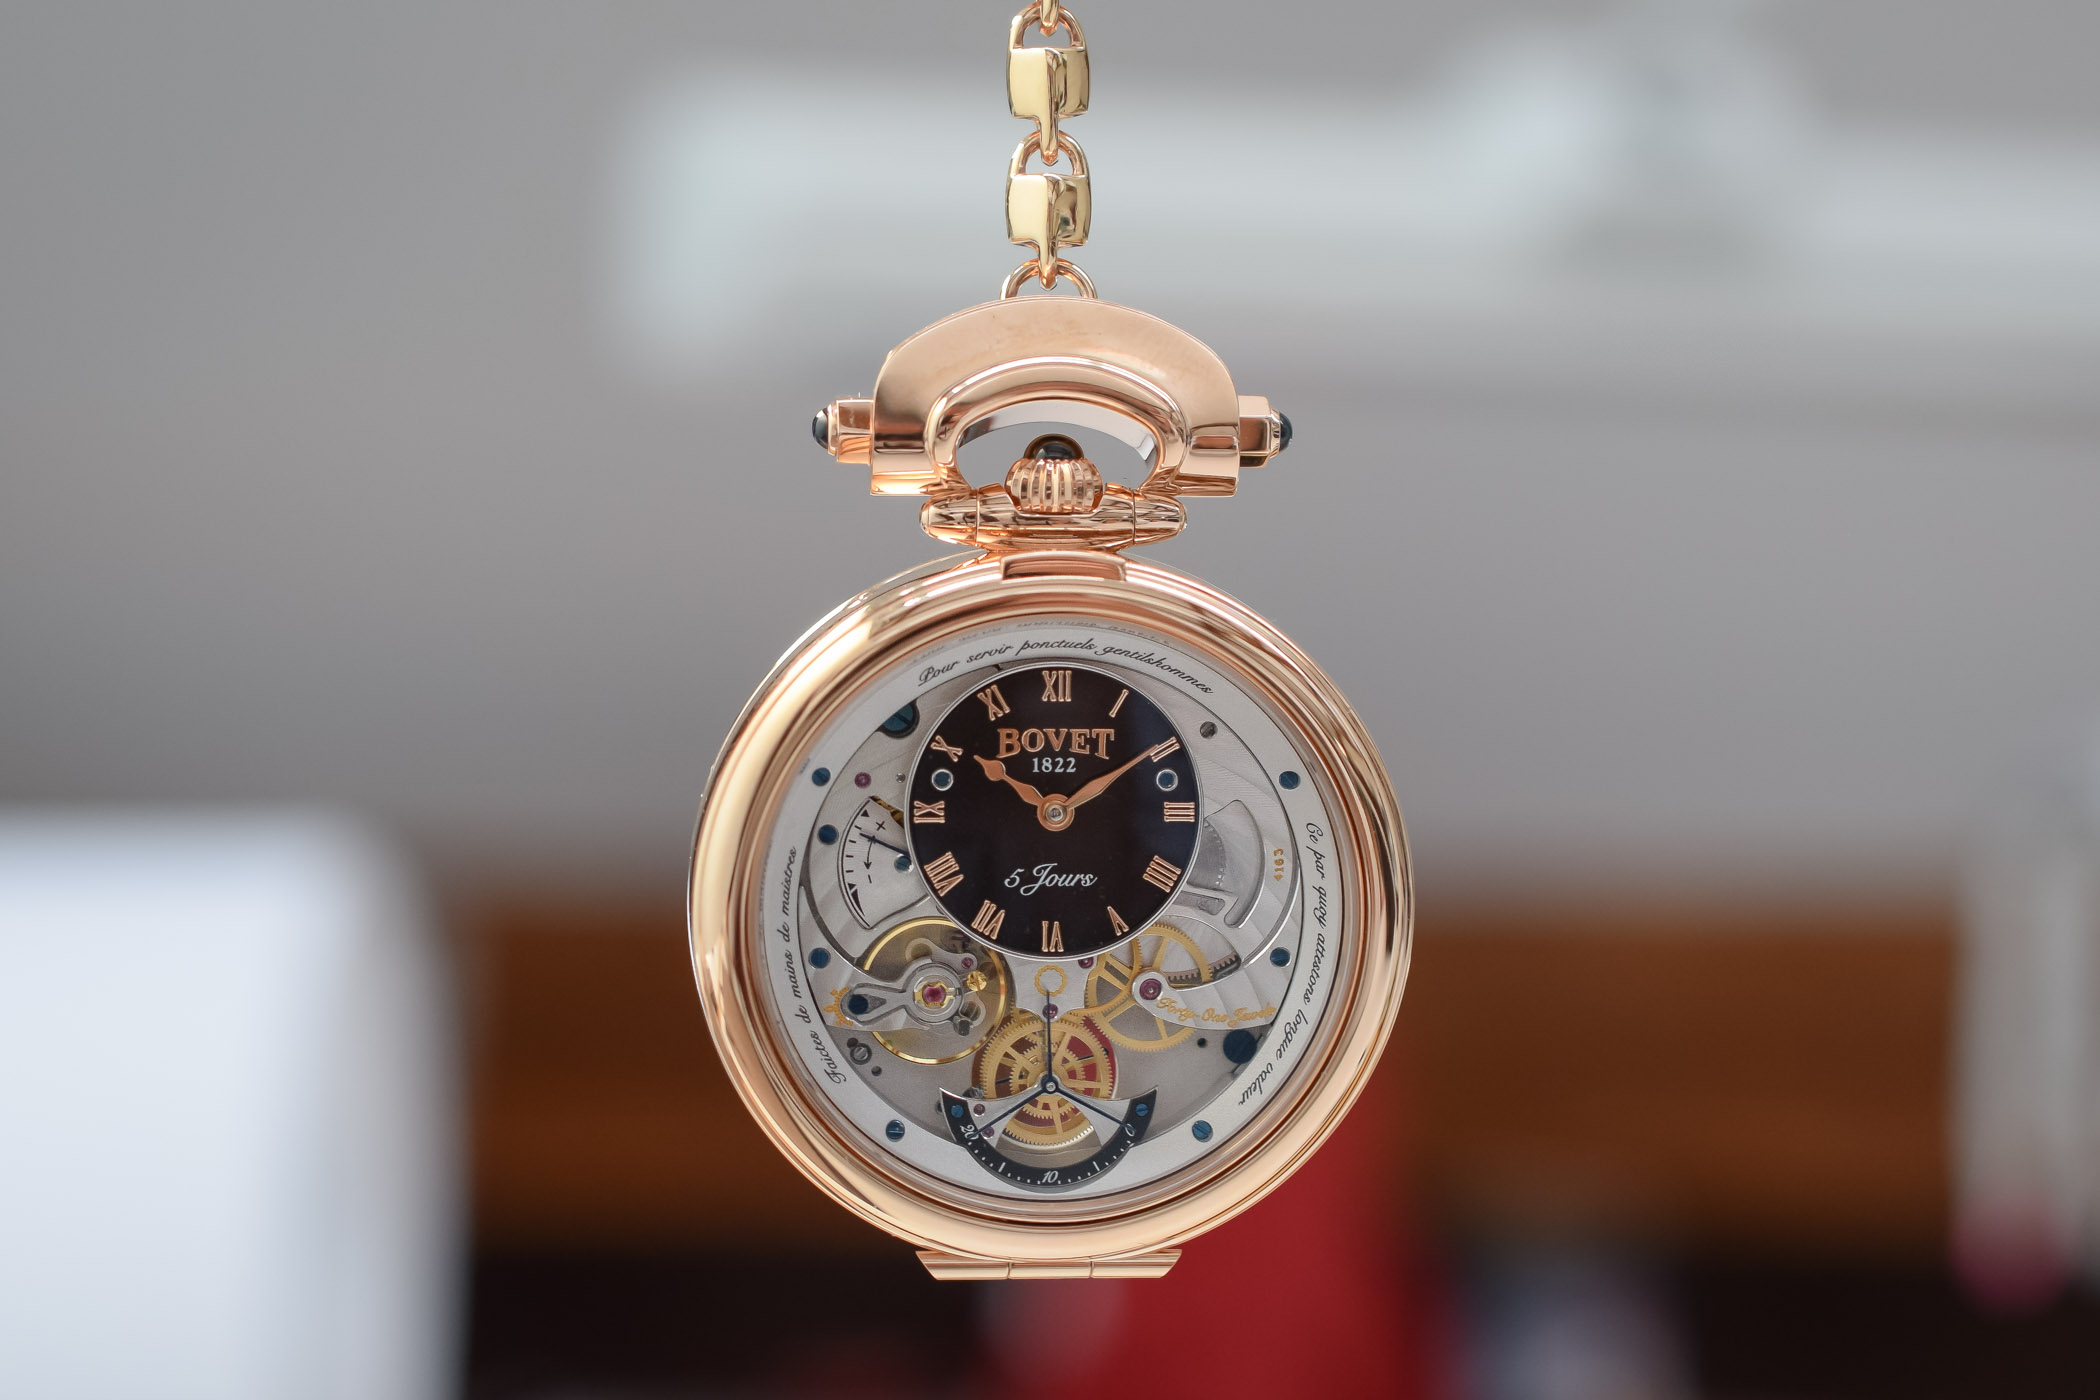 Bovet Amadeo Fleurier Virtuoso V Jumping Hours